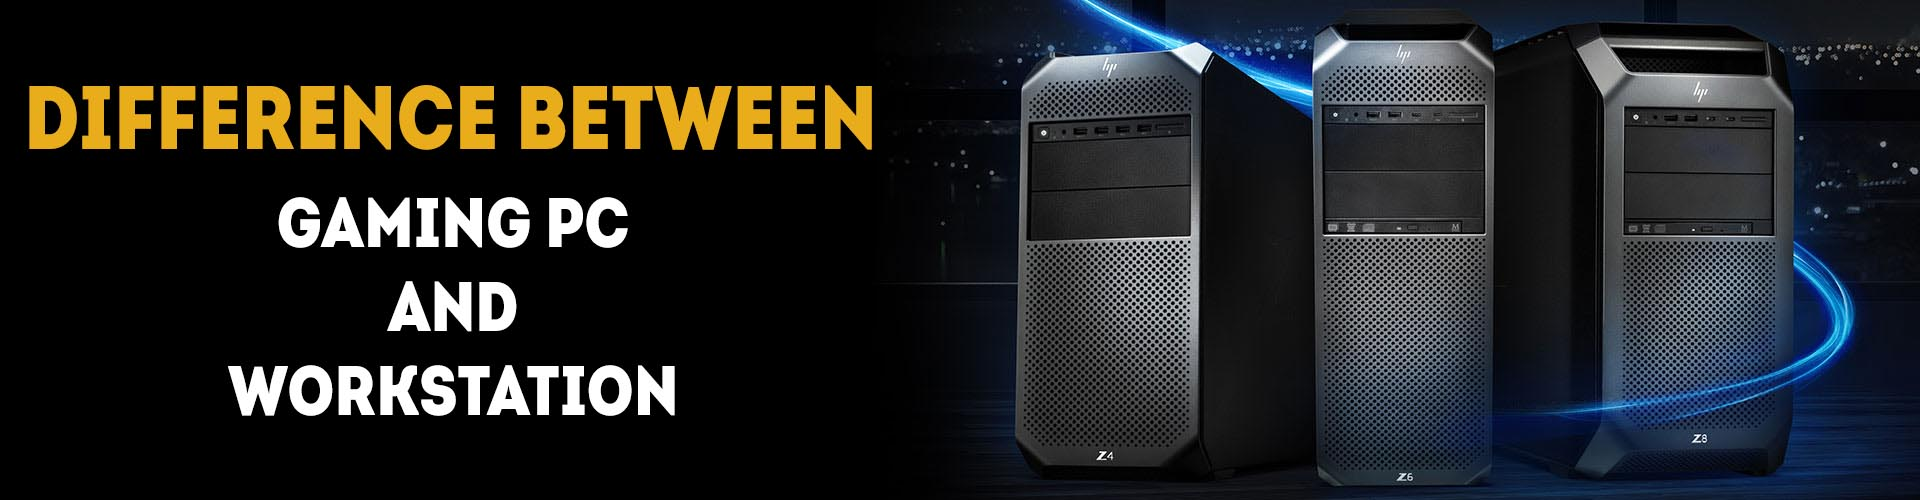 Workstation vs Gaming PC – Which Should I Choose?